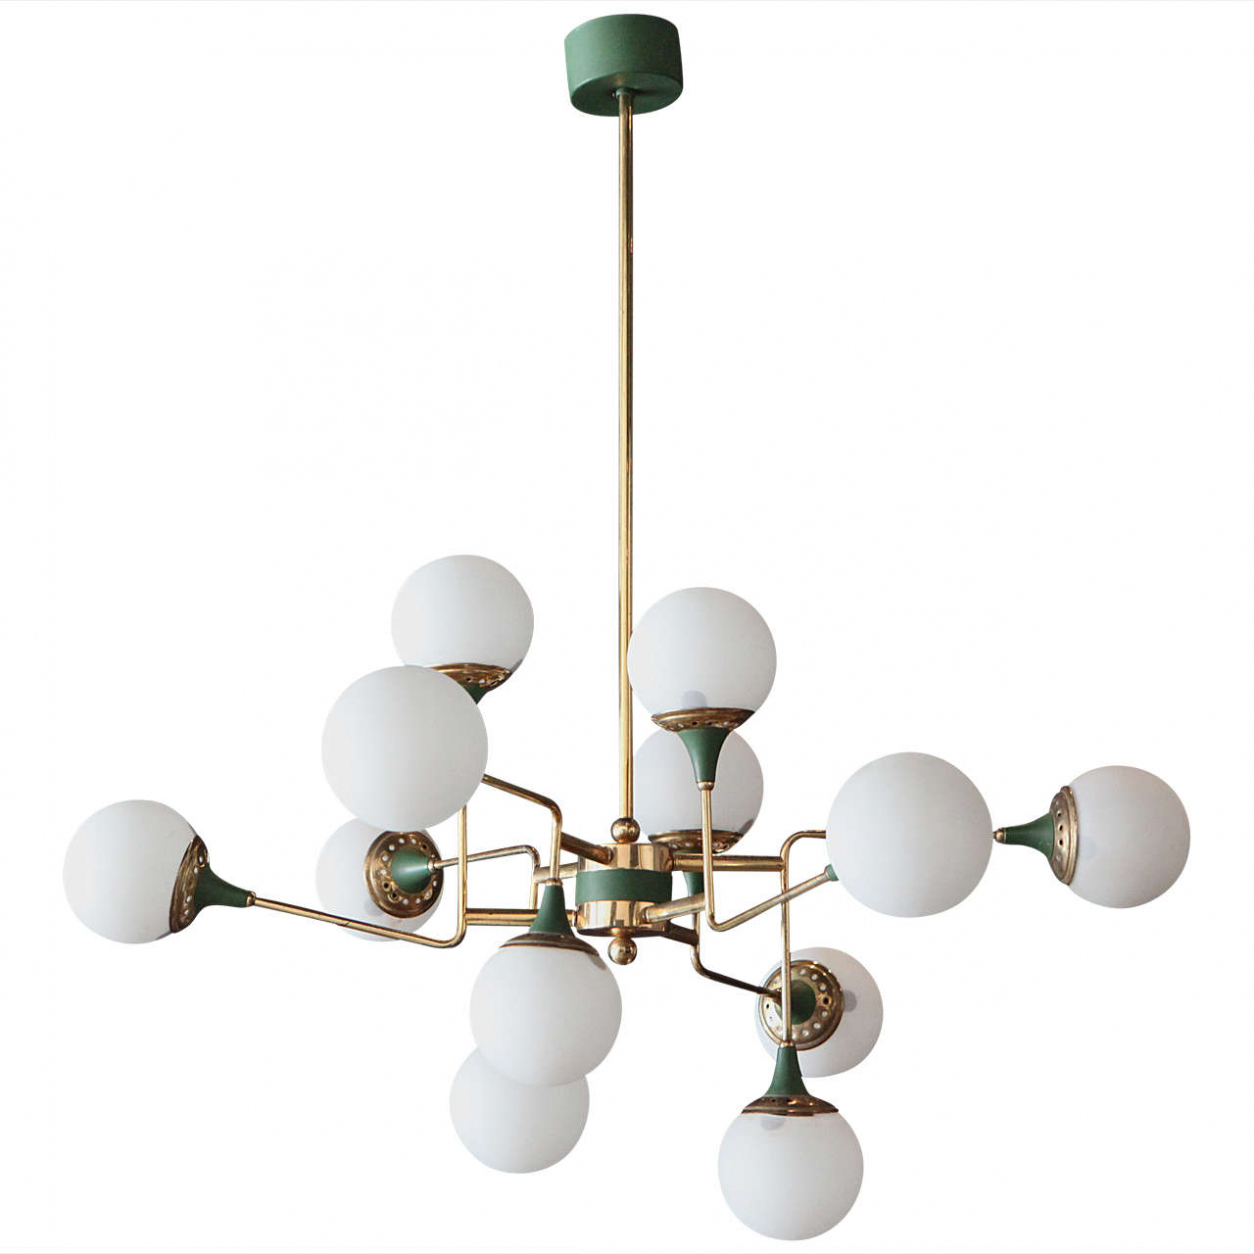 Twelve Globe Stilnovo Chandelier Italy 1950 From A Unique Inside Stilnovo Lighting With Images Stilnovo Chandelier Chandelier Pendant Lights Modern Pendant Lamps